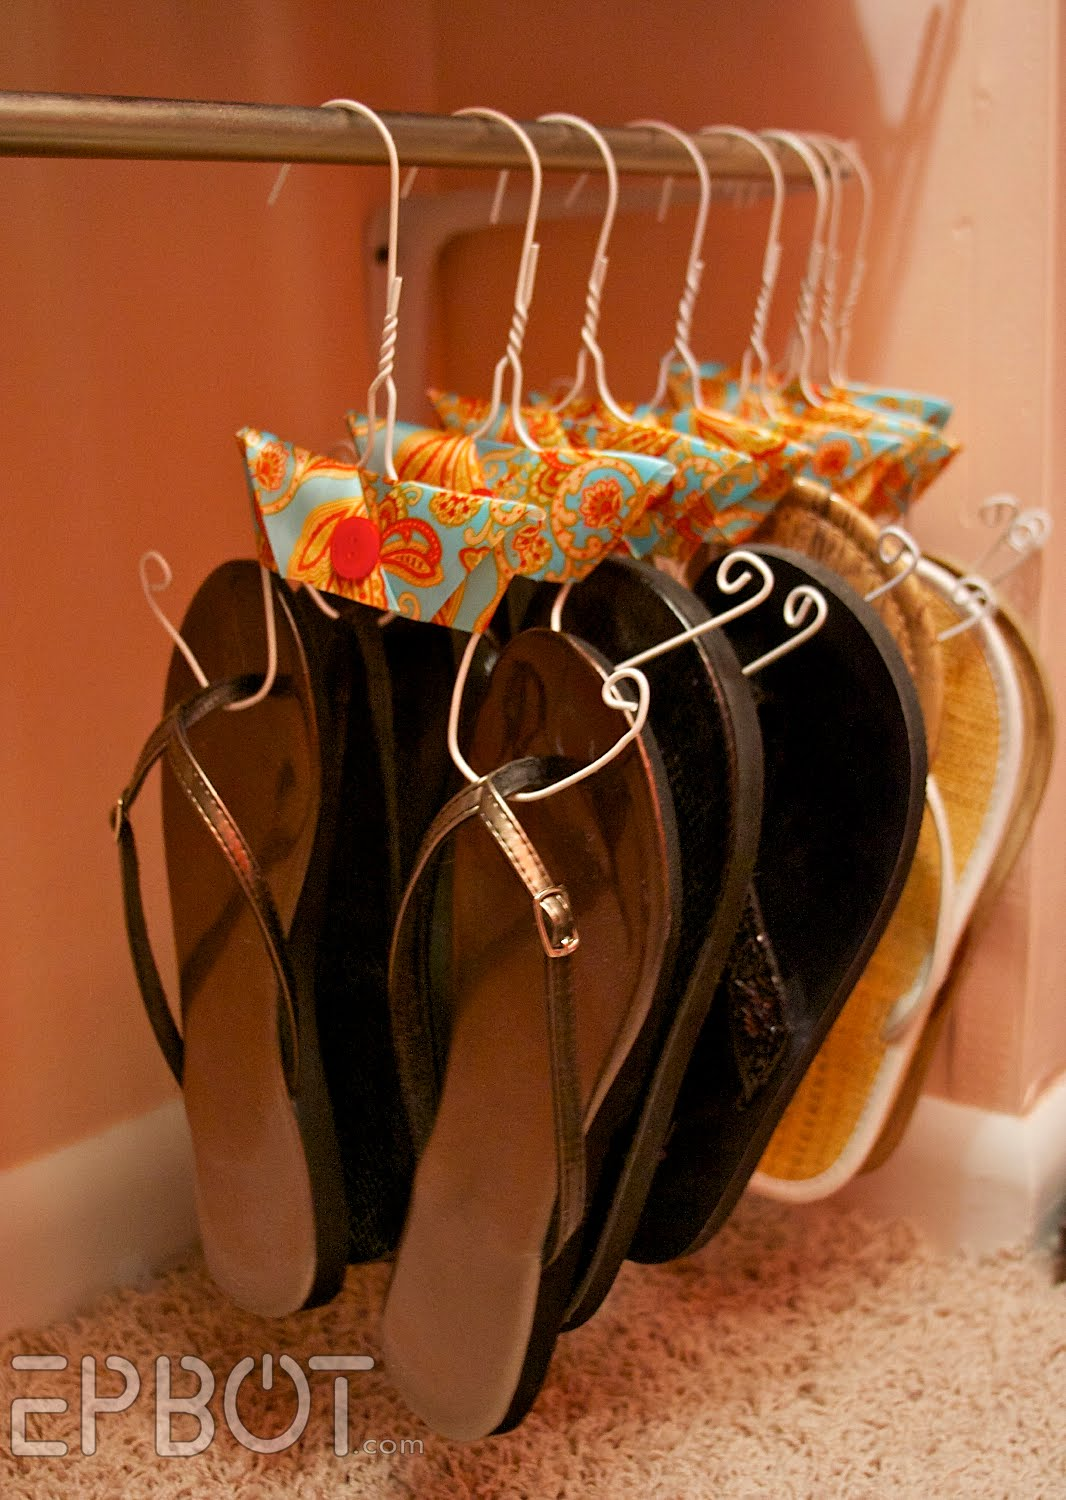 Hang Your Flip Flops The Classy Way